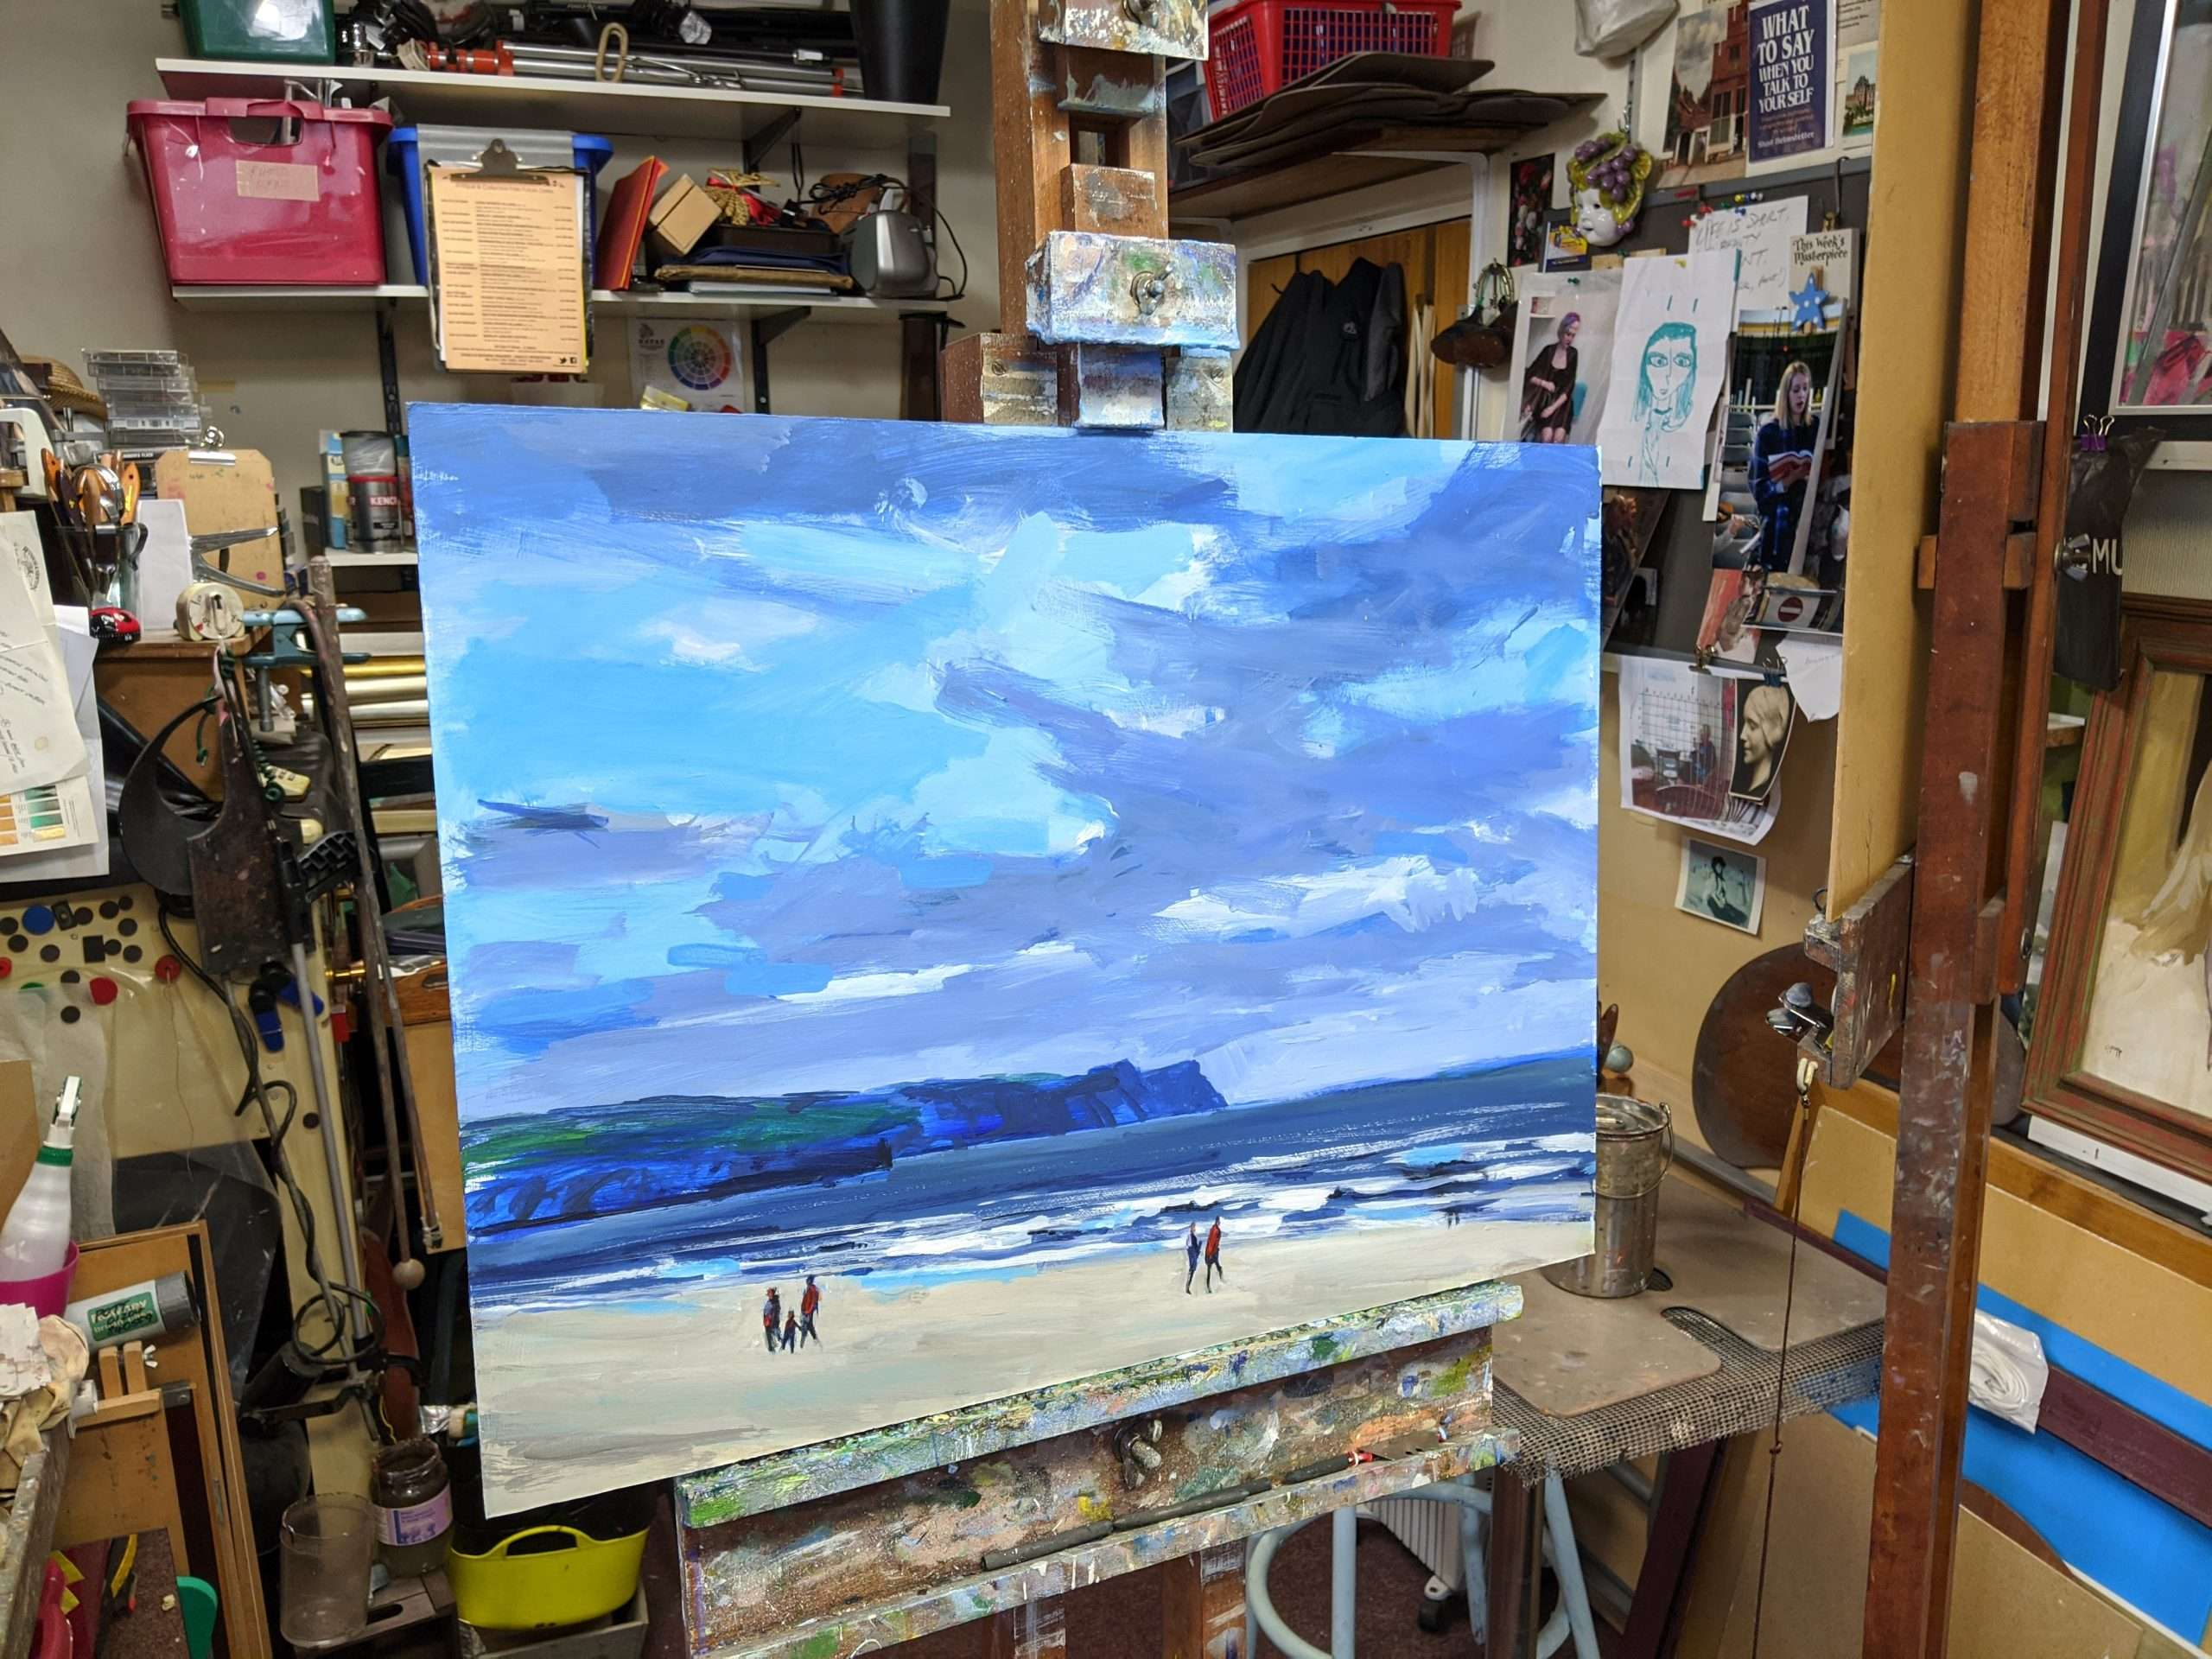 A seascape painting of Whitby